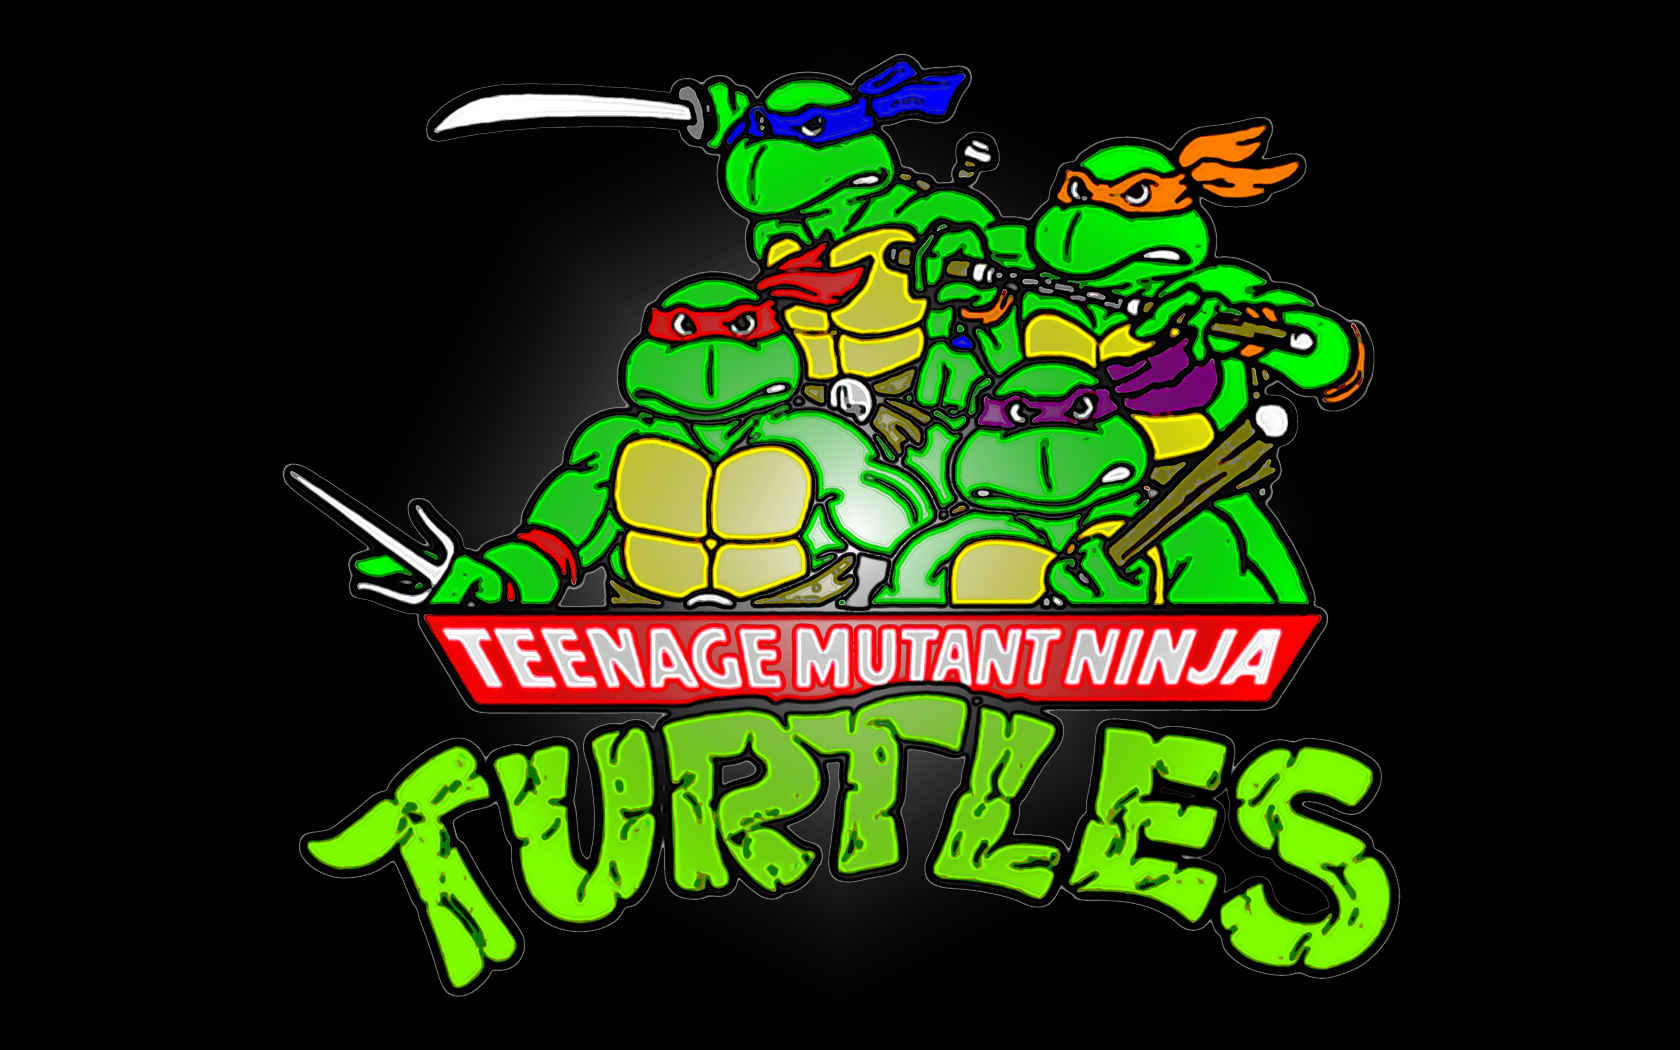 Top Wallpapers Collection: Teenage Mutant Ninja Turtles Desktop Wallpapers